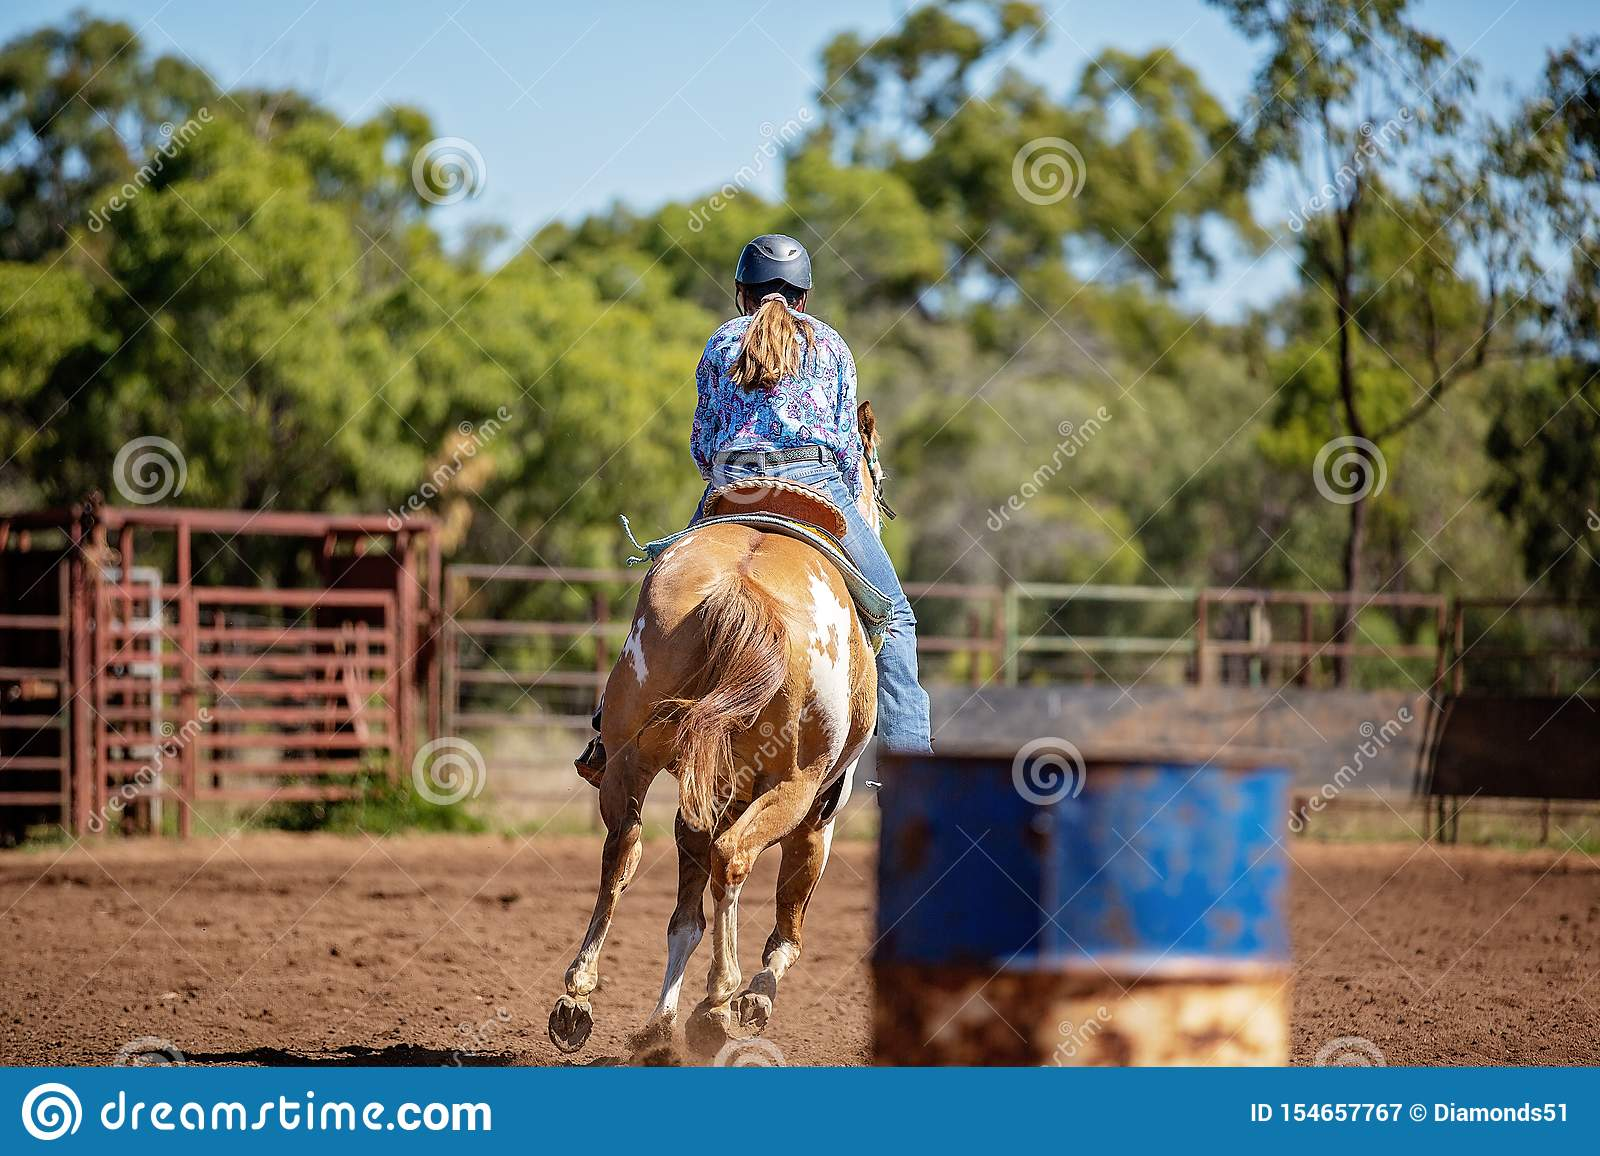 Cowgirl Competing In Barrel Racing At Outback Country Rodeo